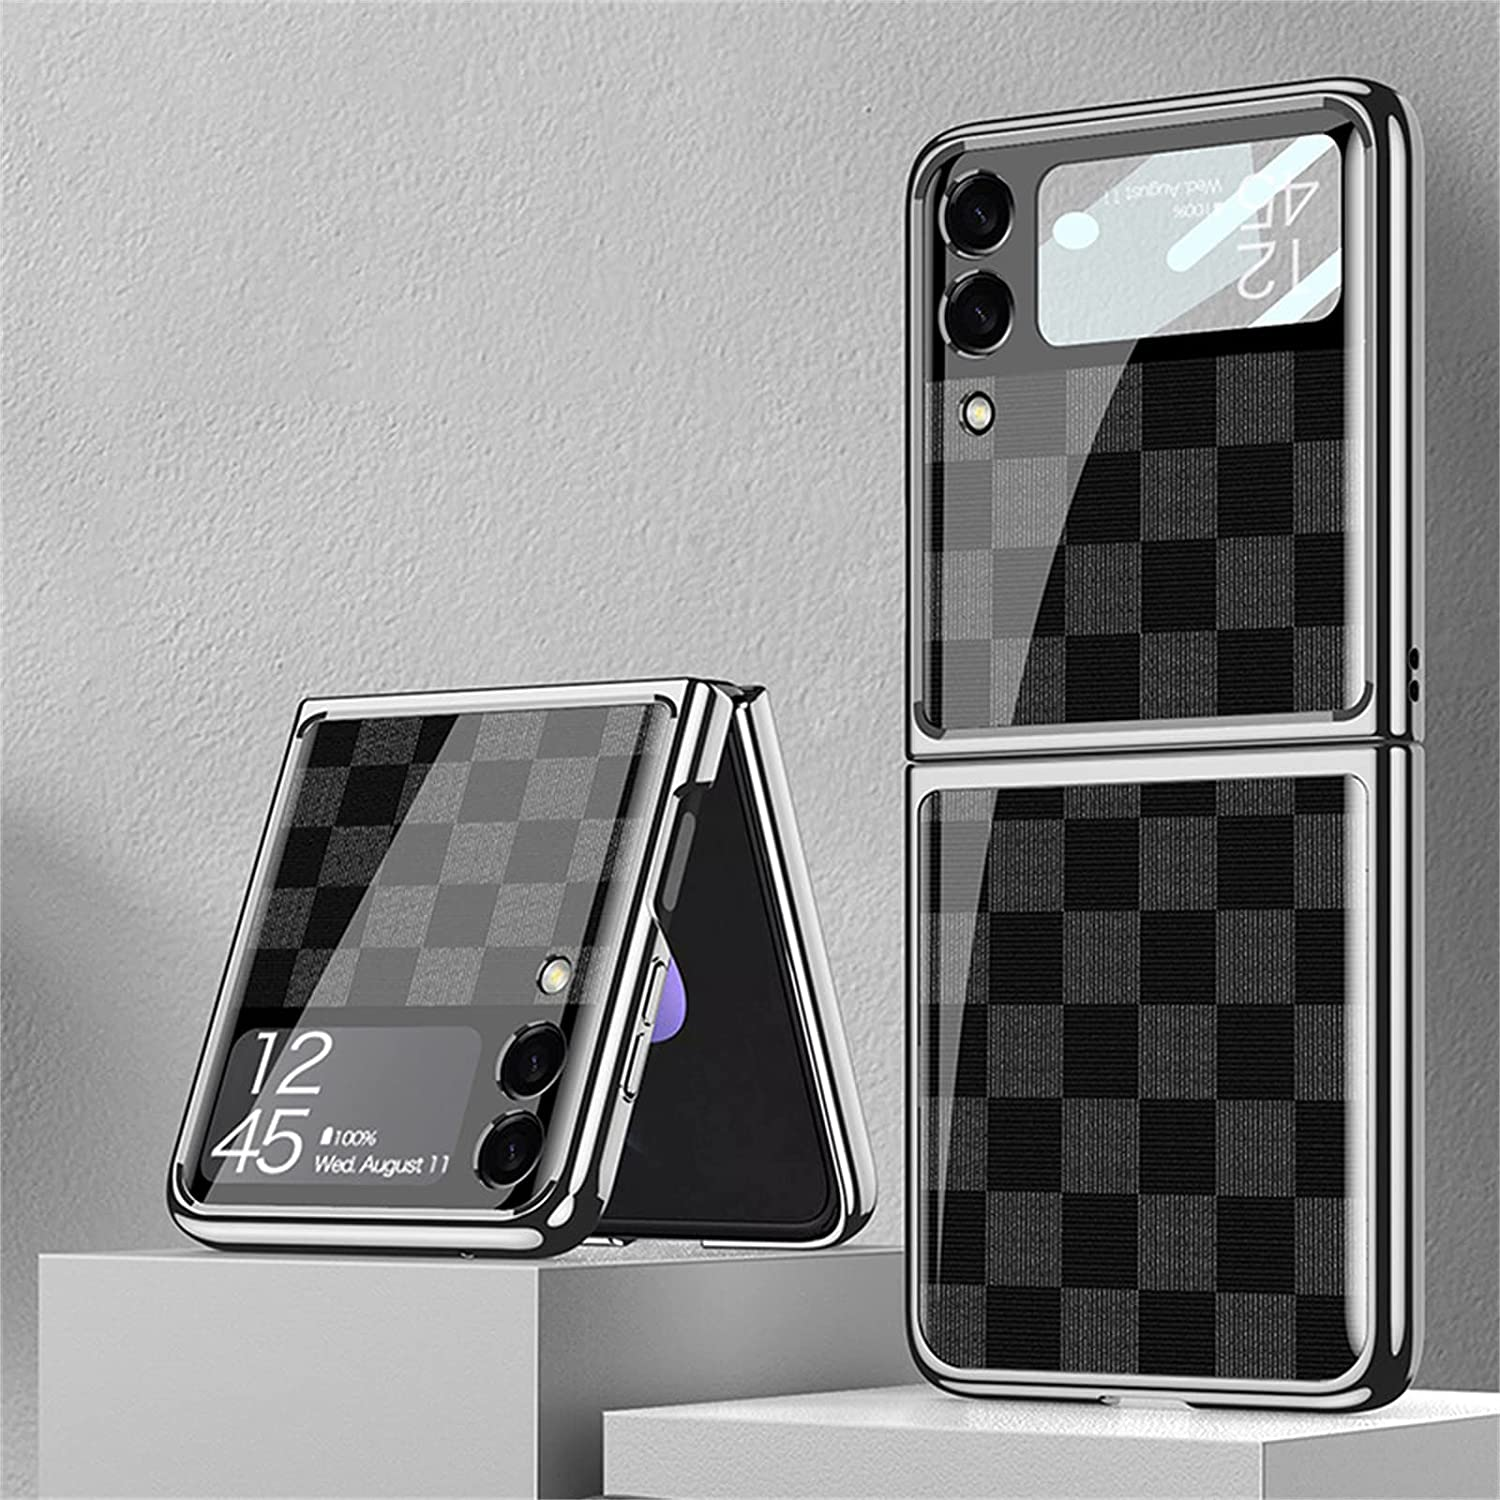 Suitable for Samsung Galaxy Z Flip 3 5G Luxury Phone Case, Tempered Glass Bumper Flip Protector for Galaxy Z Flip 3 5G 2021 (Checkerboard,A)